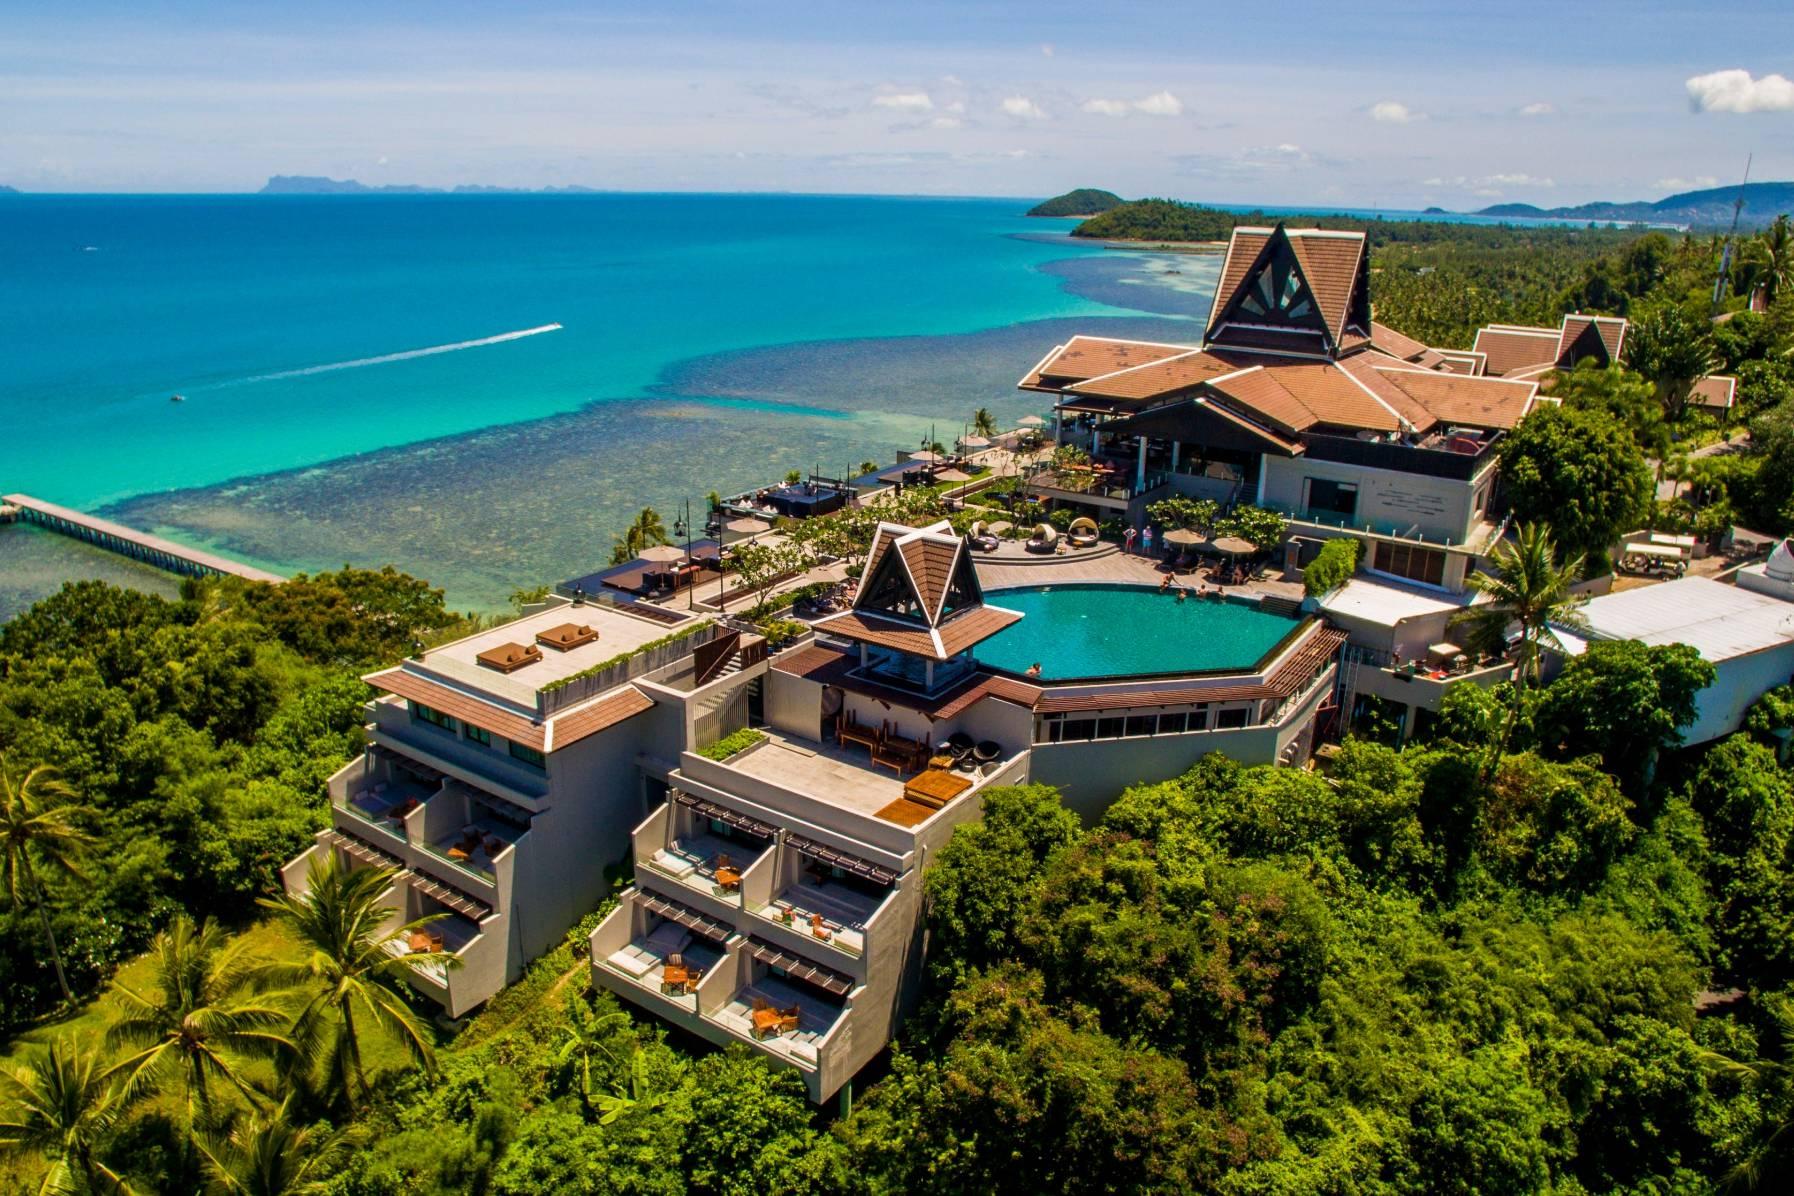 A Private Tropical Island Oasis: Intercontinental Samui Baan Taling Ngam Resort